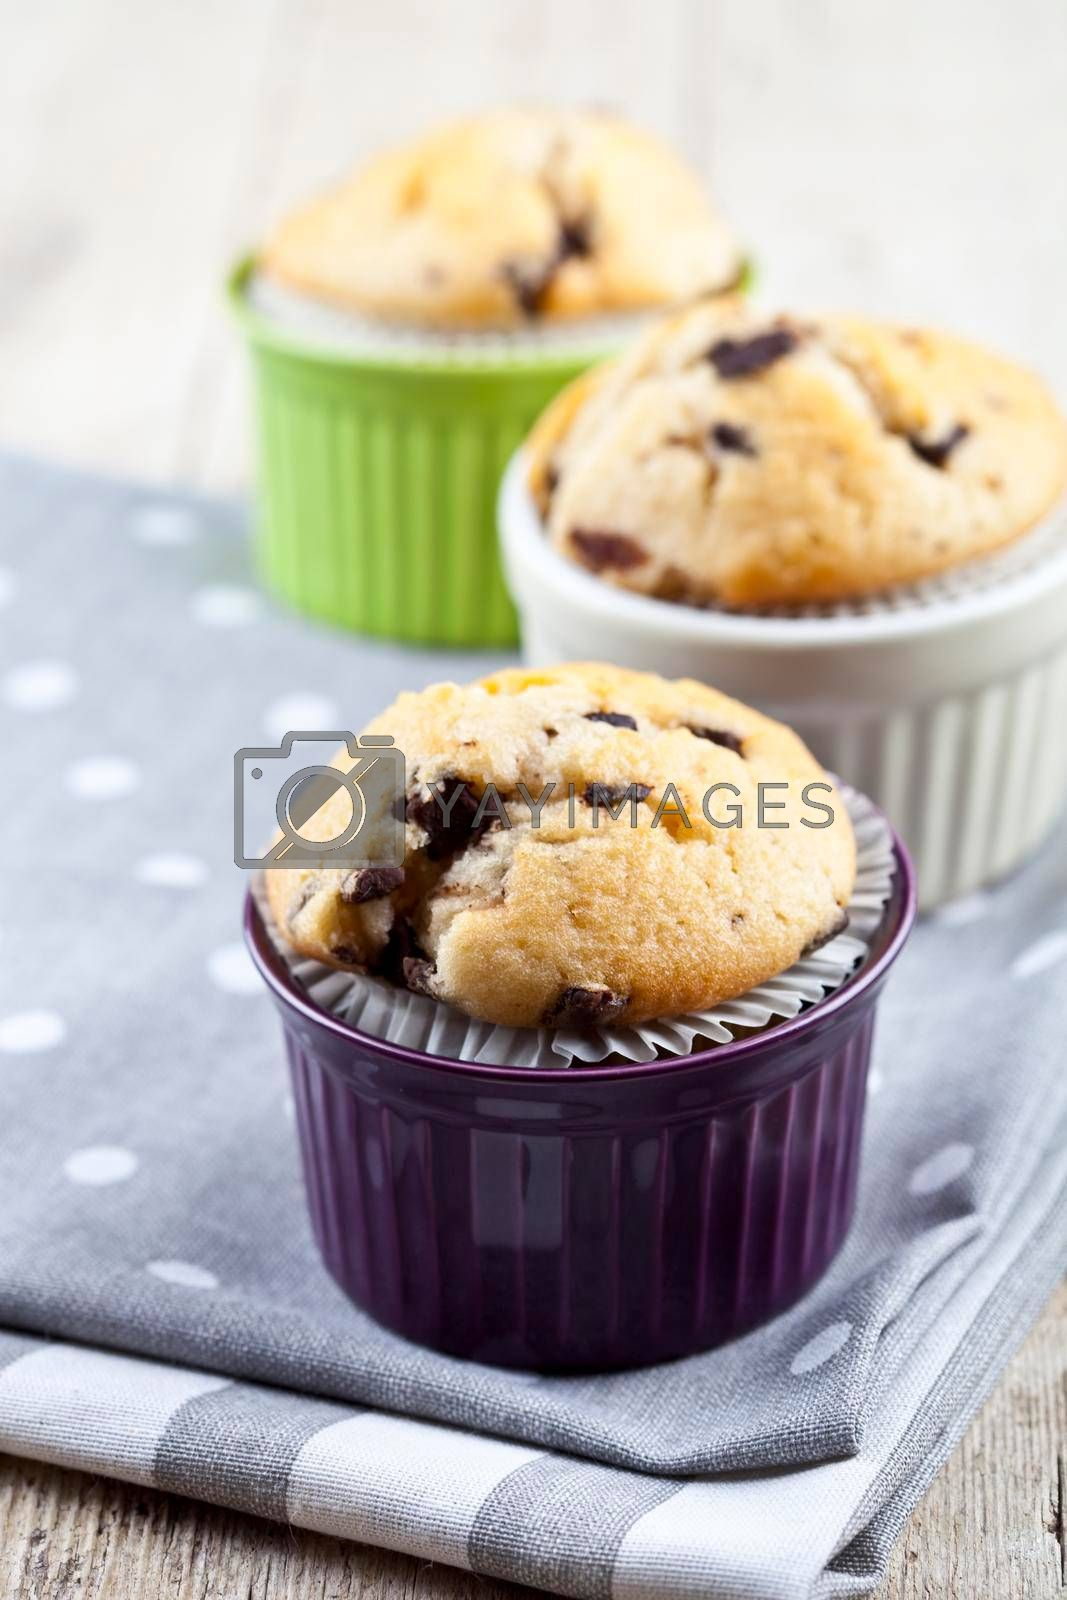 Three homemade fresh muffins on colorful ceramic bowls on linen napkins on rustic wooden table background.